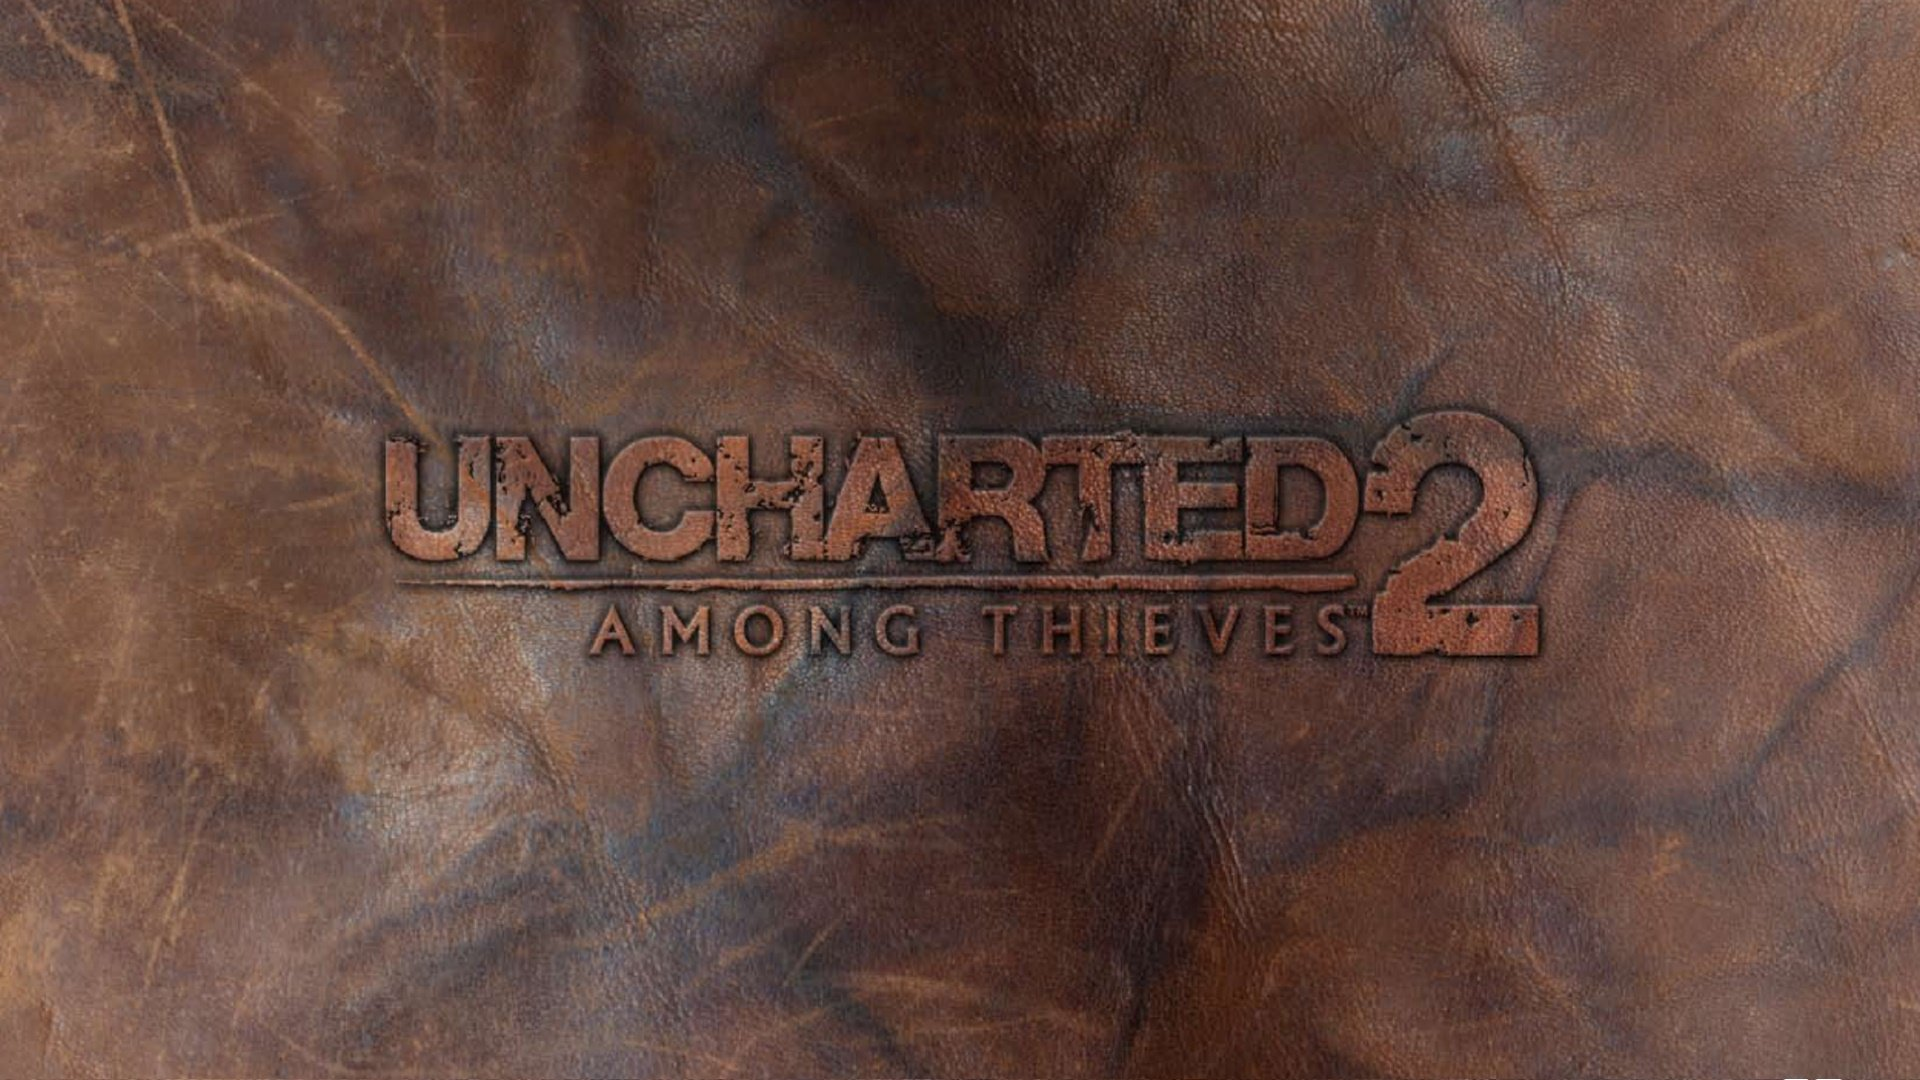 Uncharted 2 Among Thieves   leather wallpaper 1920x1080 1920x1080